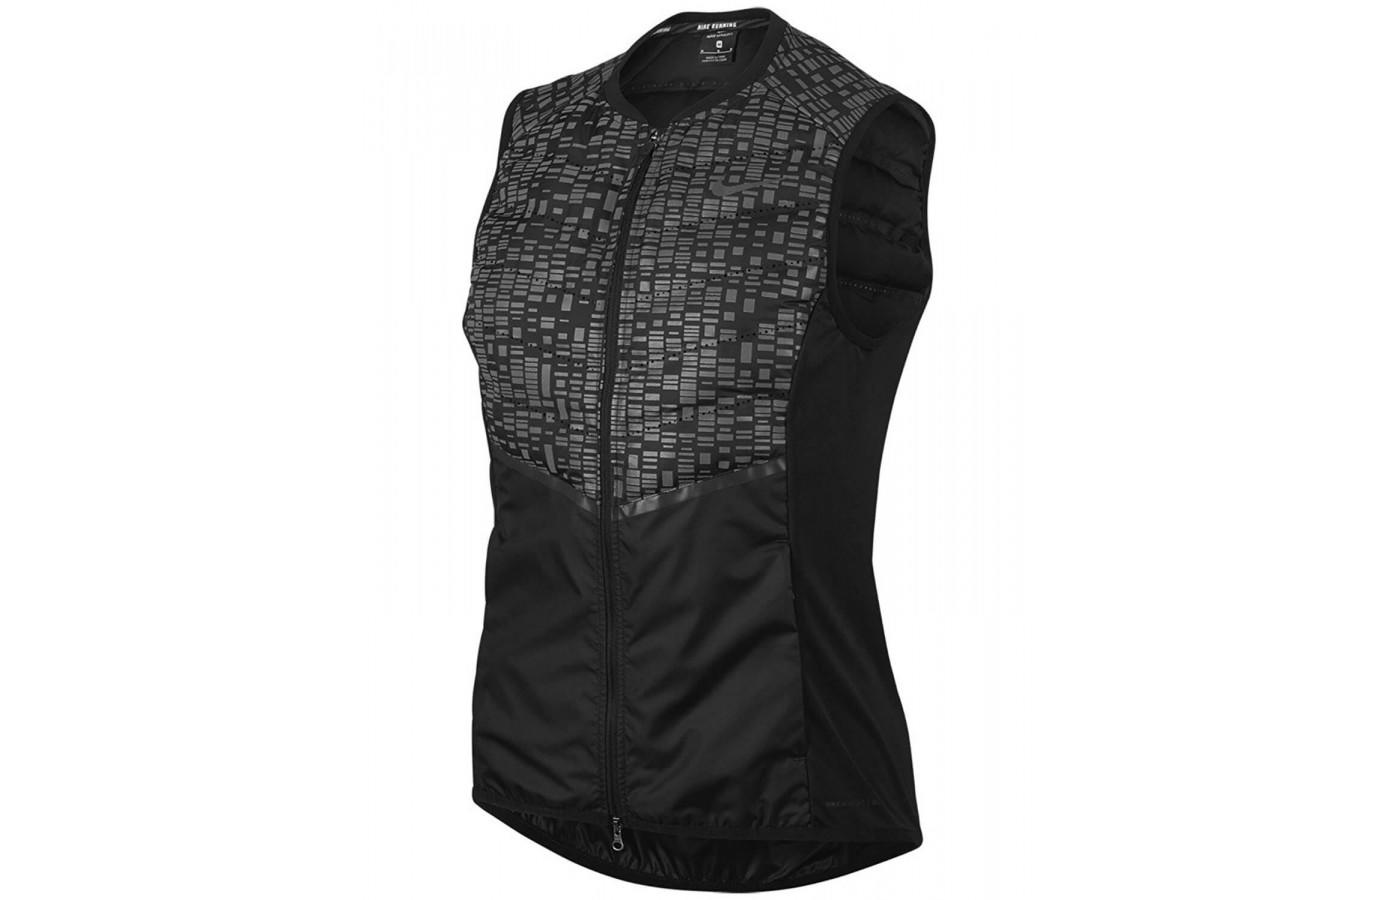 Nike AeroLoft Flash is a lightly insulated down fill vest